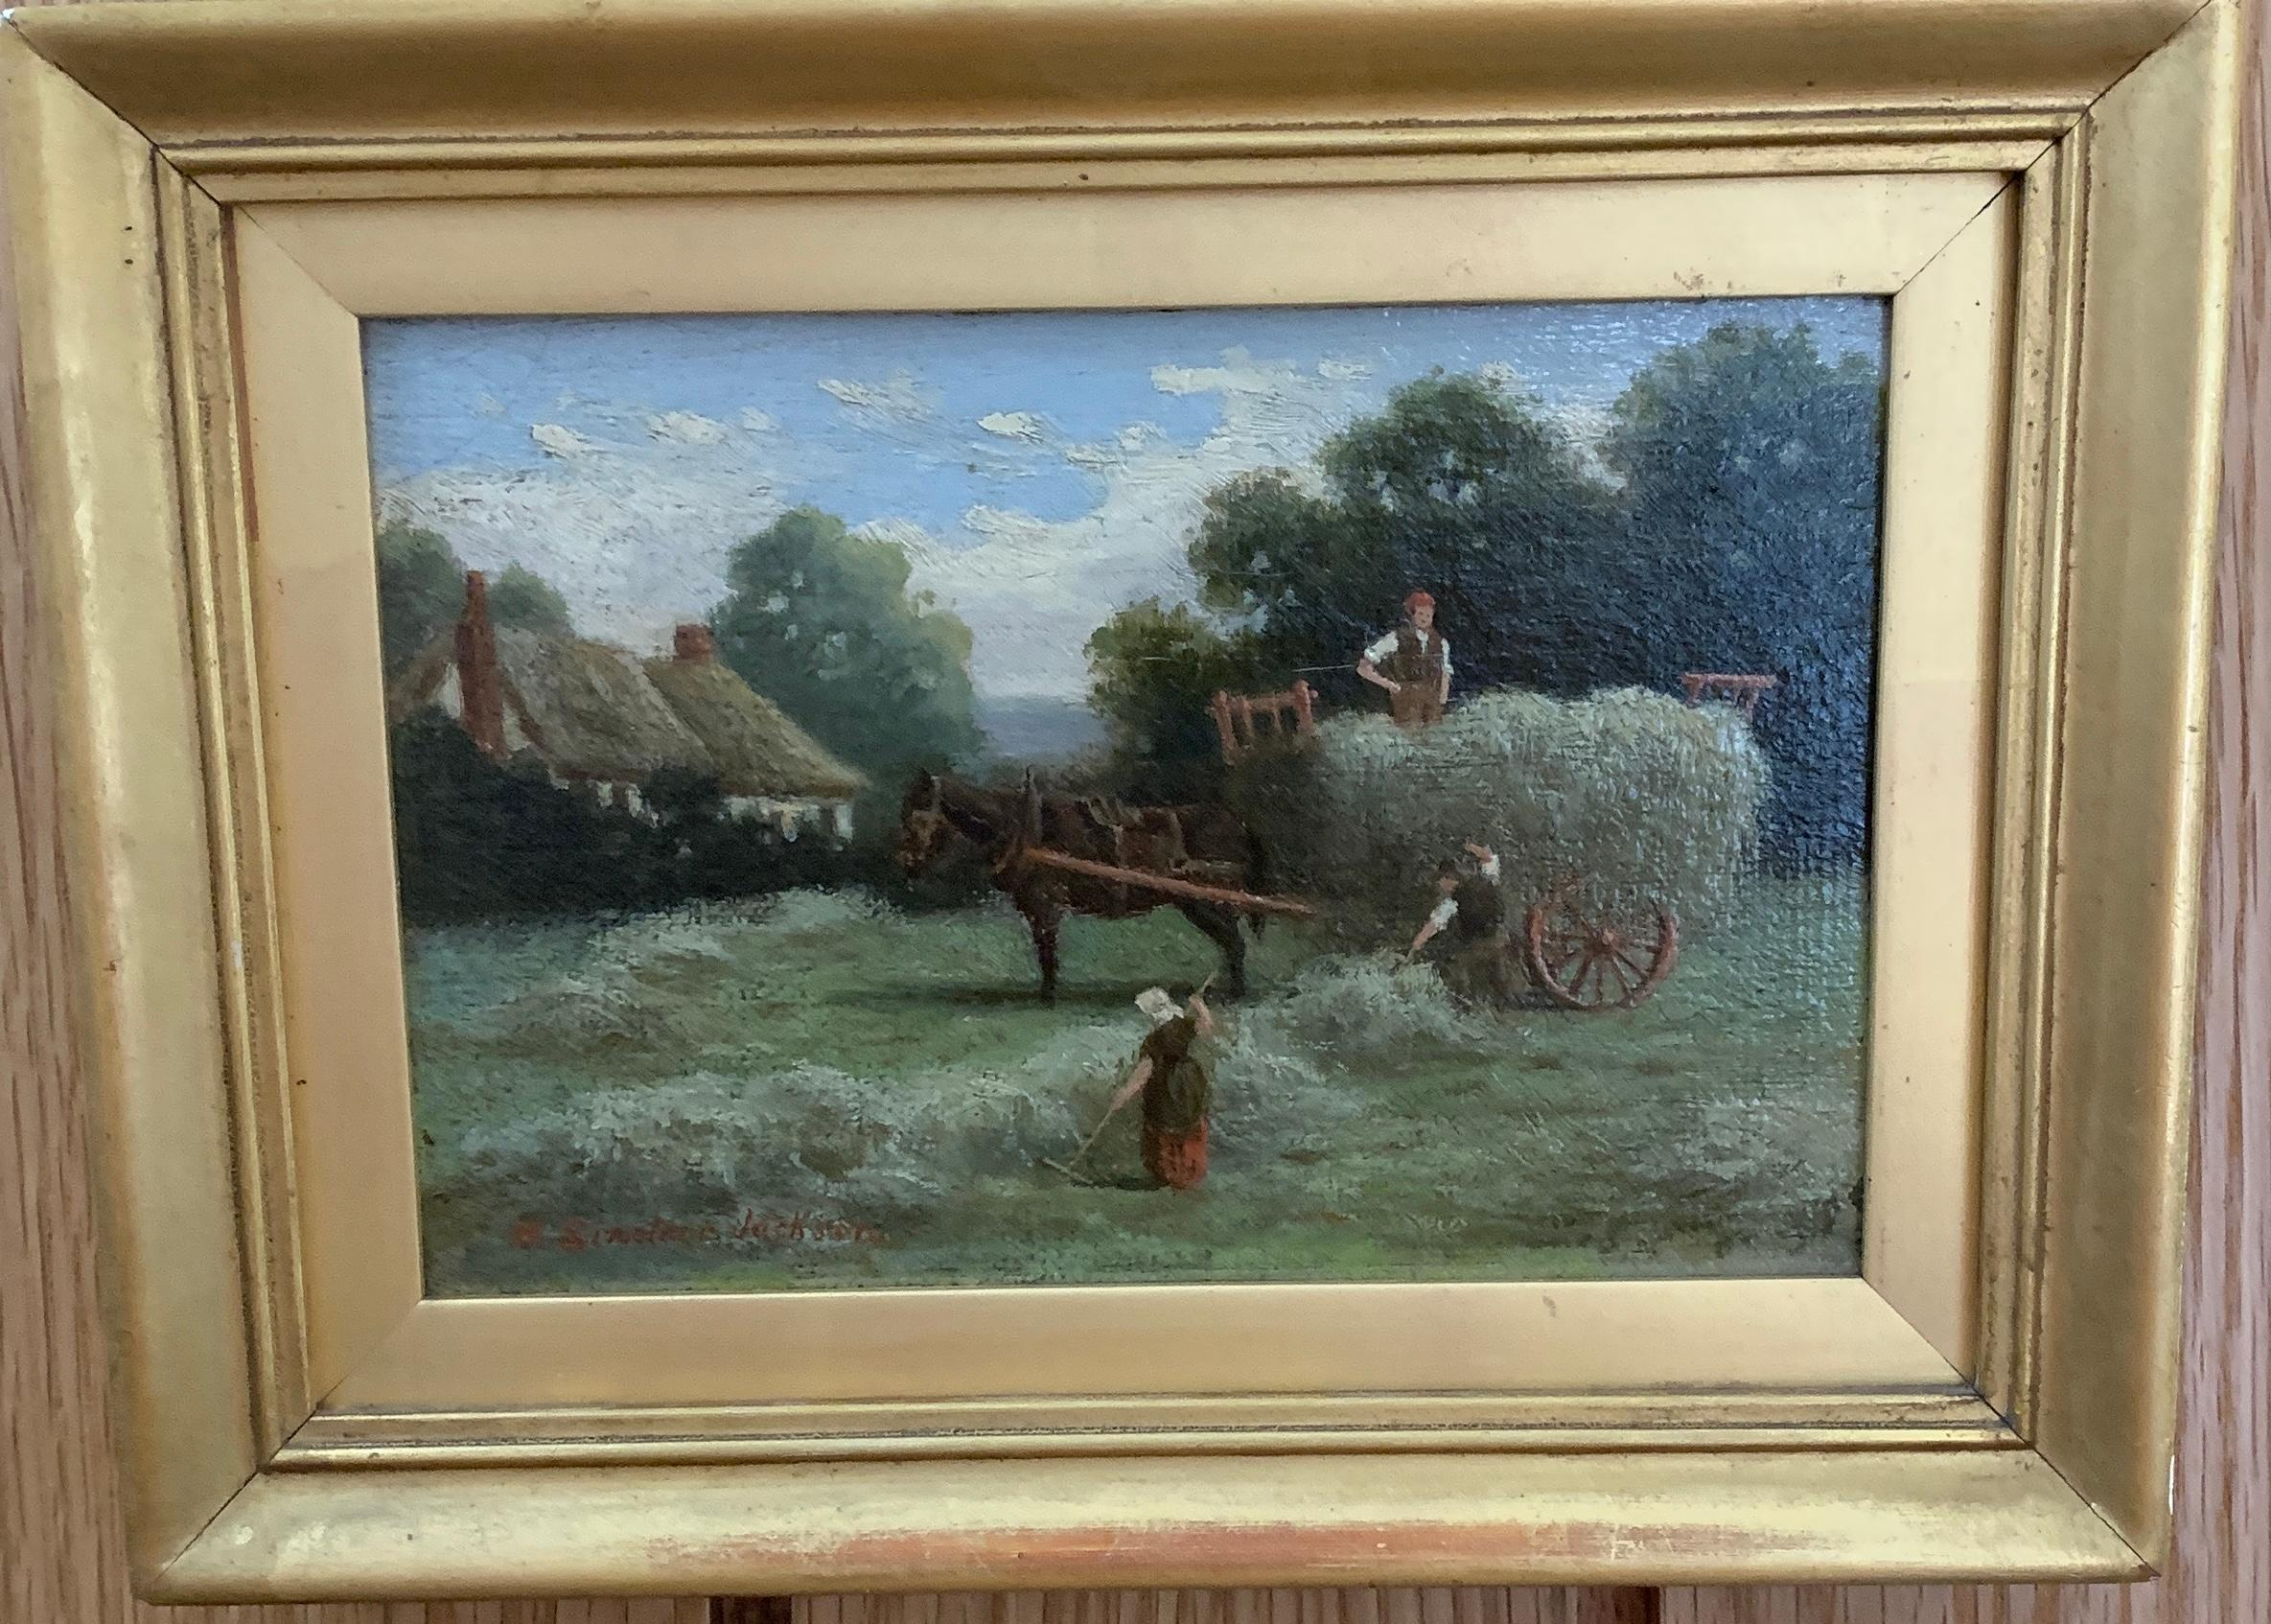 Victorian English 19th century landscape with cart, Farmers,Horse and harvest